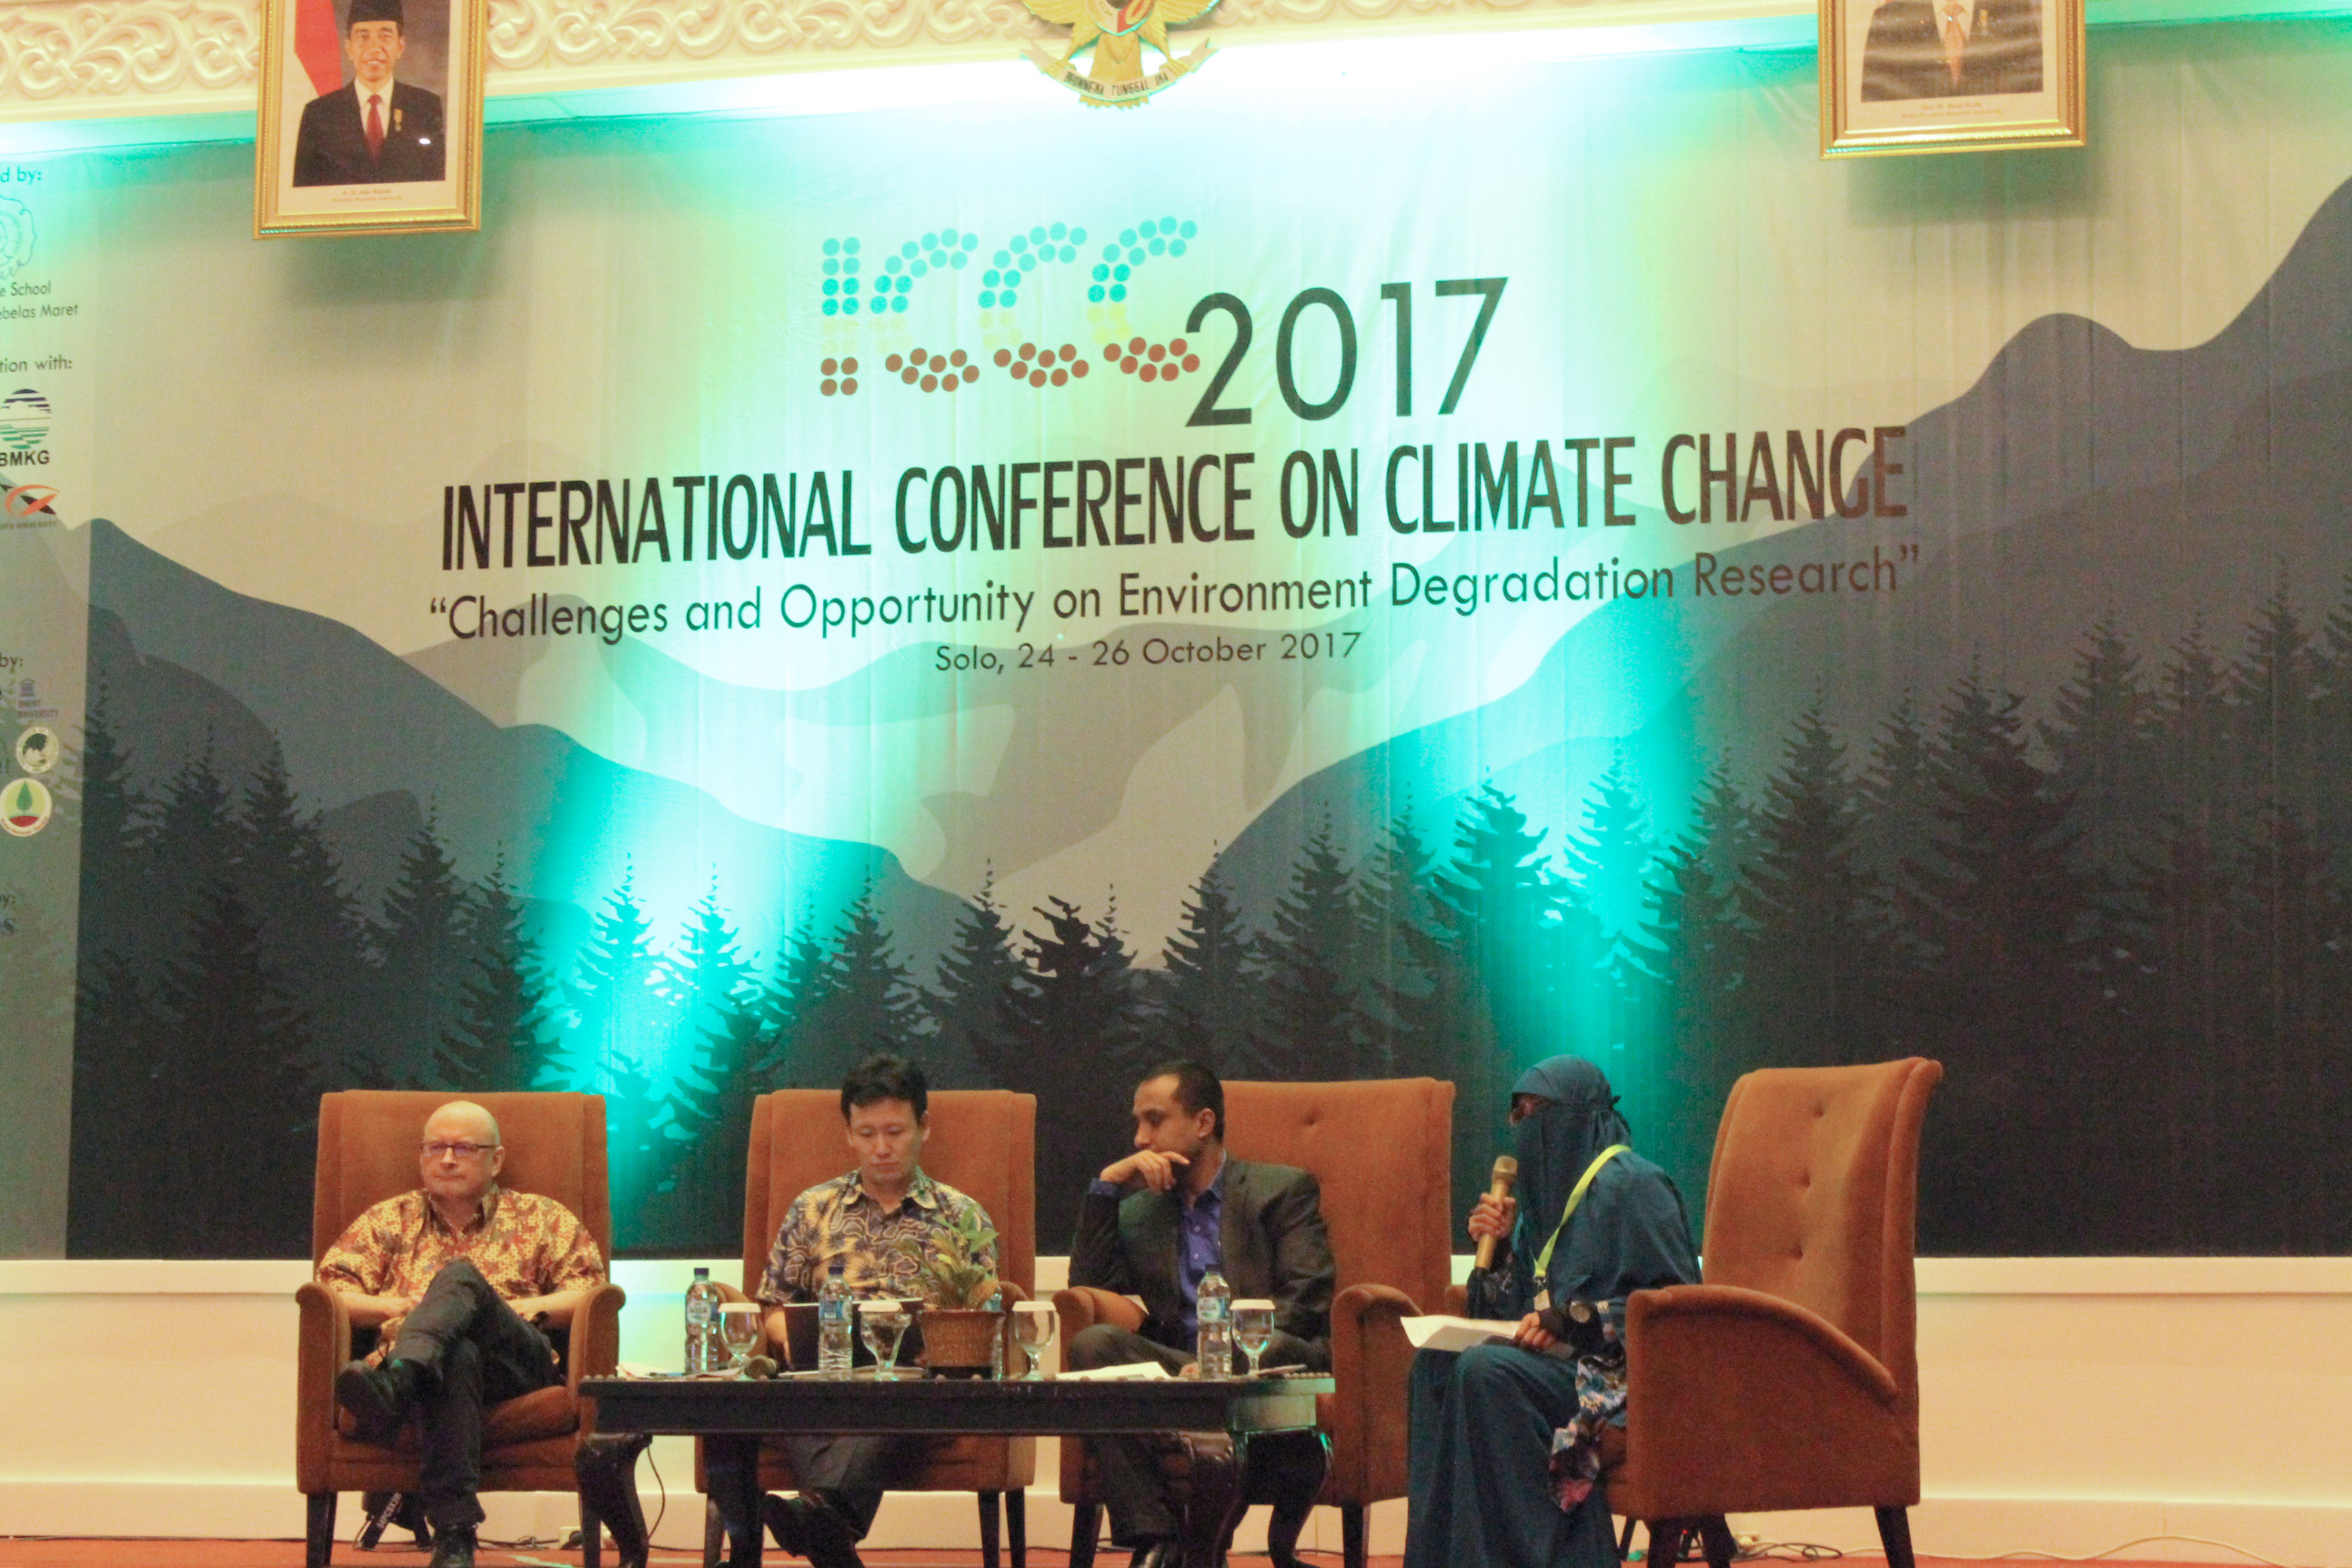 Main speaker session 2 (Dr. Anthony Kent; Assoc. Prof. Dr. Takeo Onishi; Dr. Avishek Datta; and moderator: Komariah, PhD.)